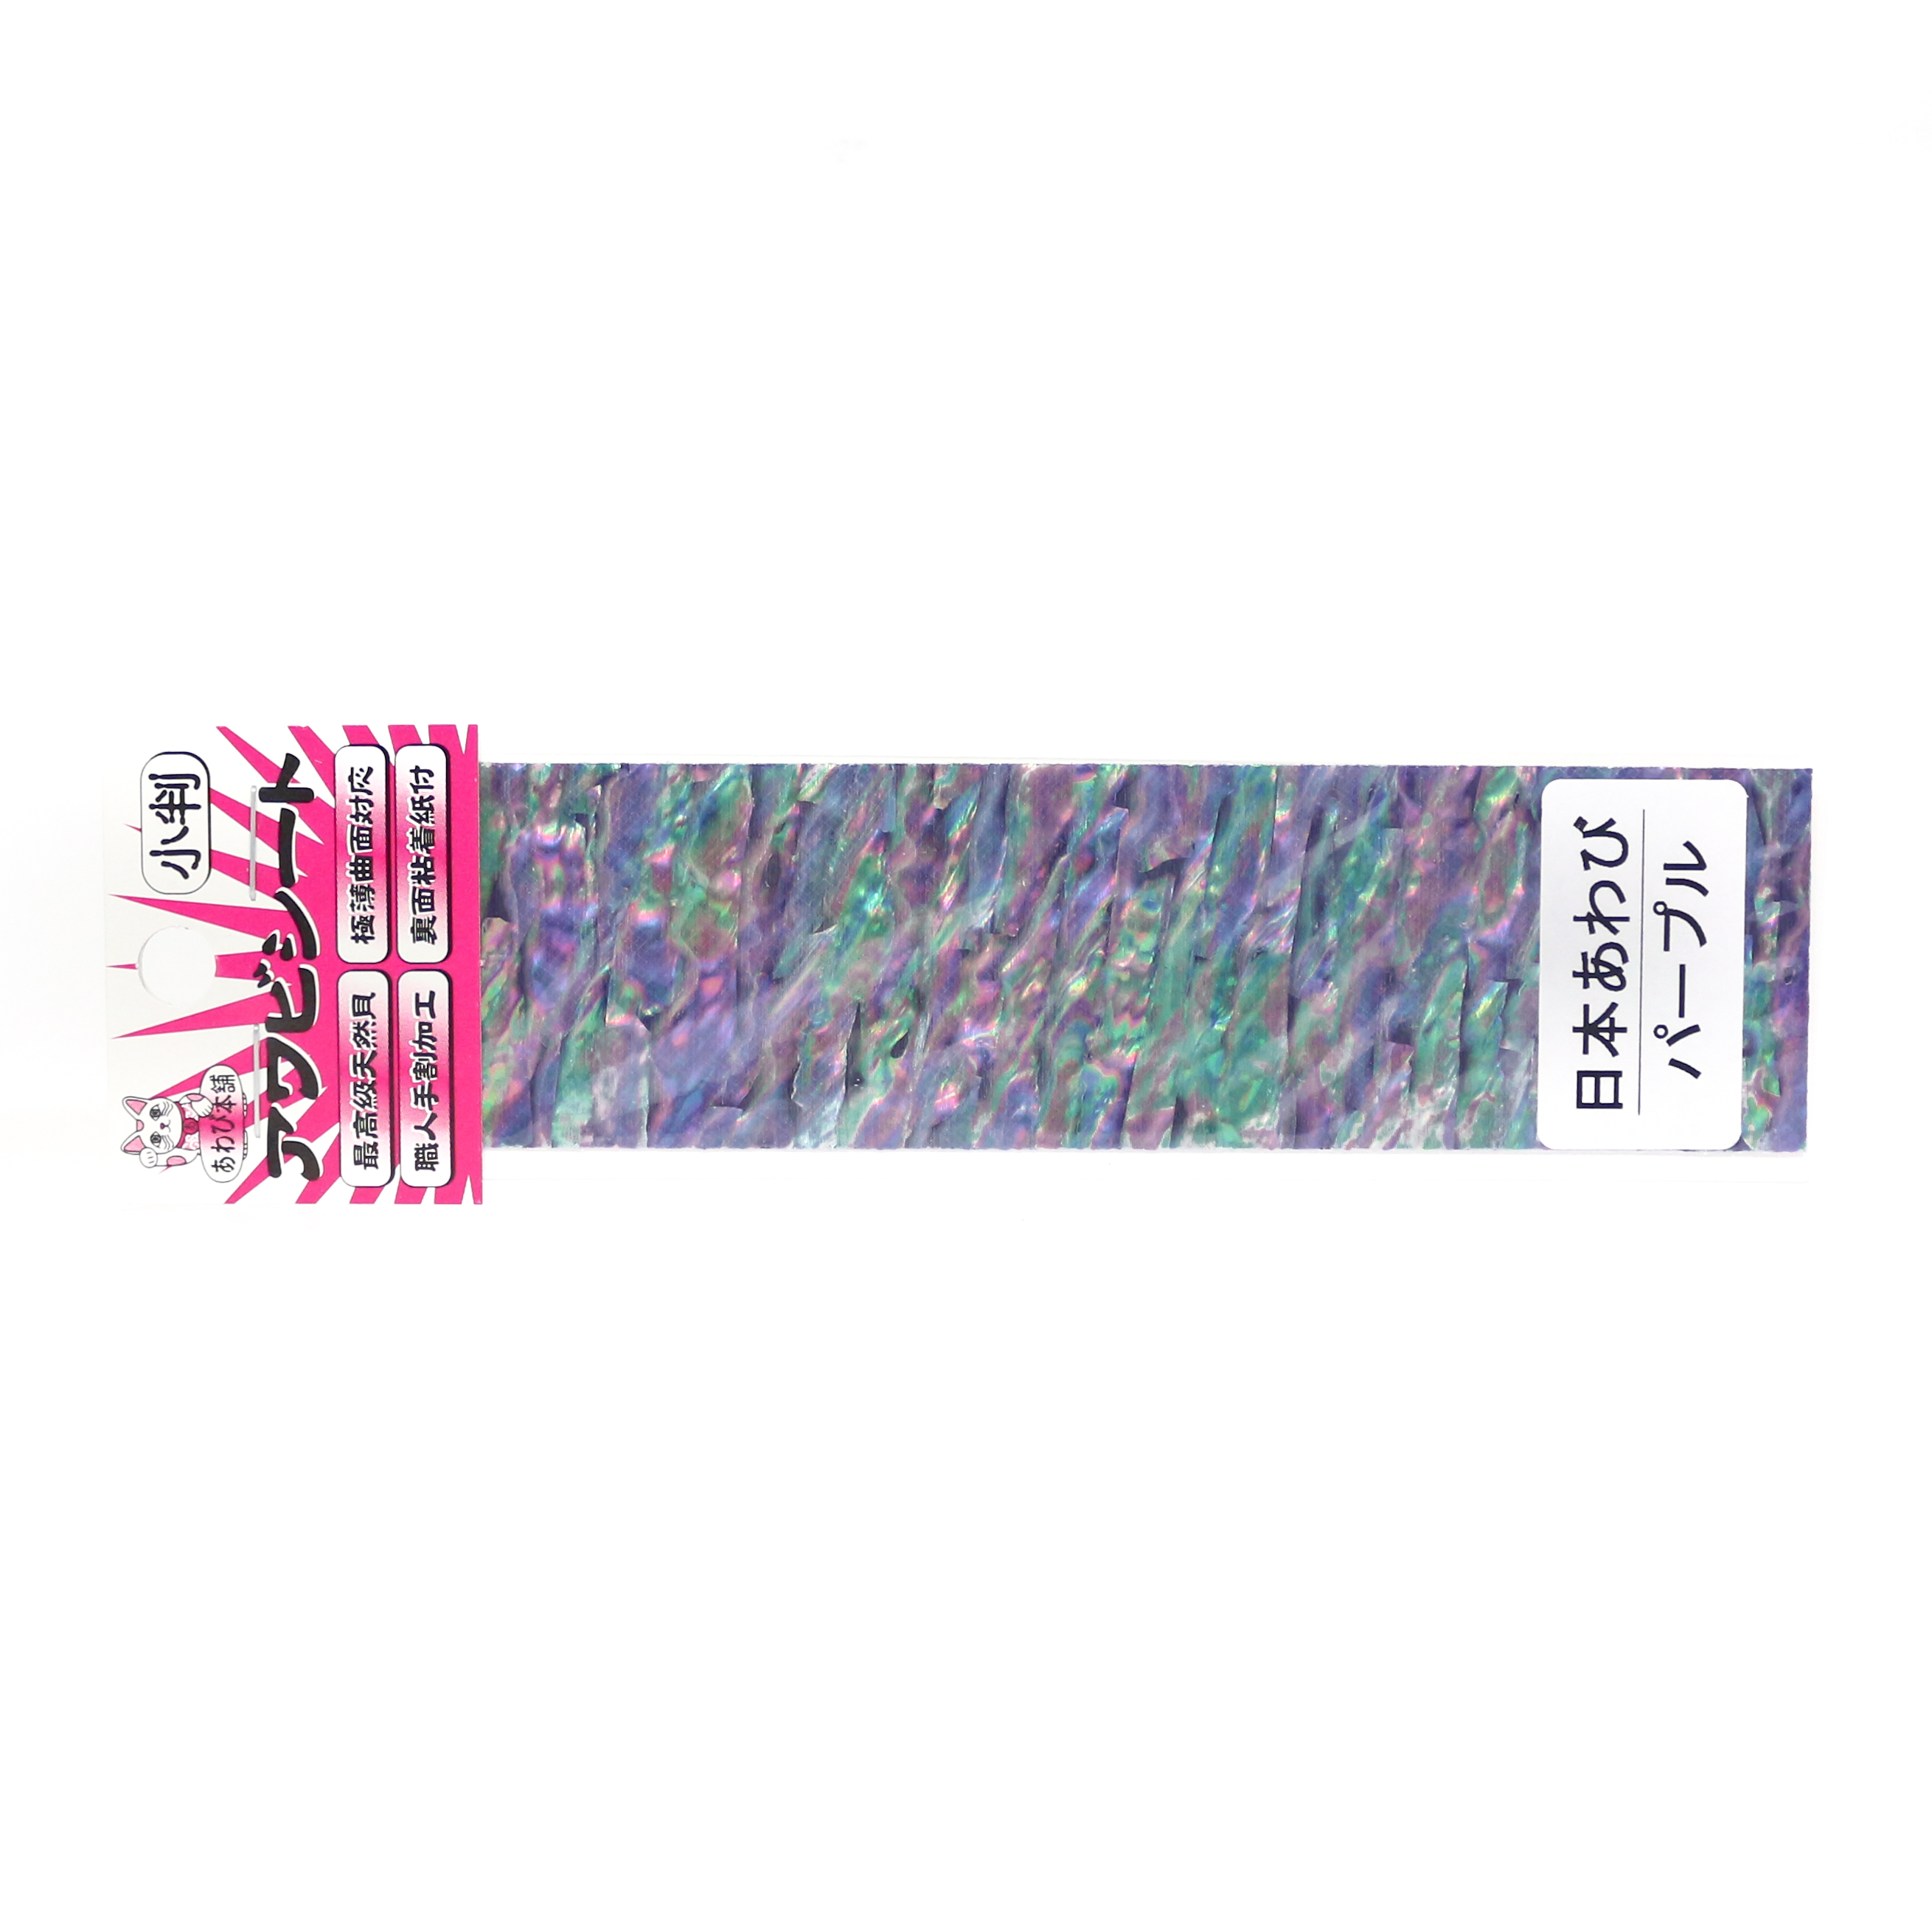 Awabi Honpo Awabi Sheet Japan Size S 40 x 140 mm Purple (0569)